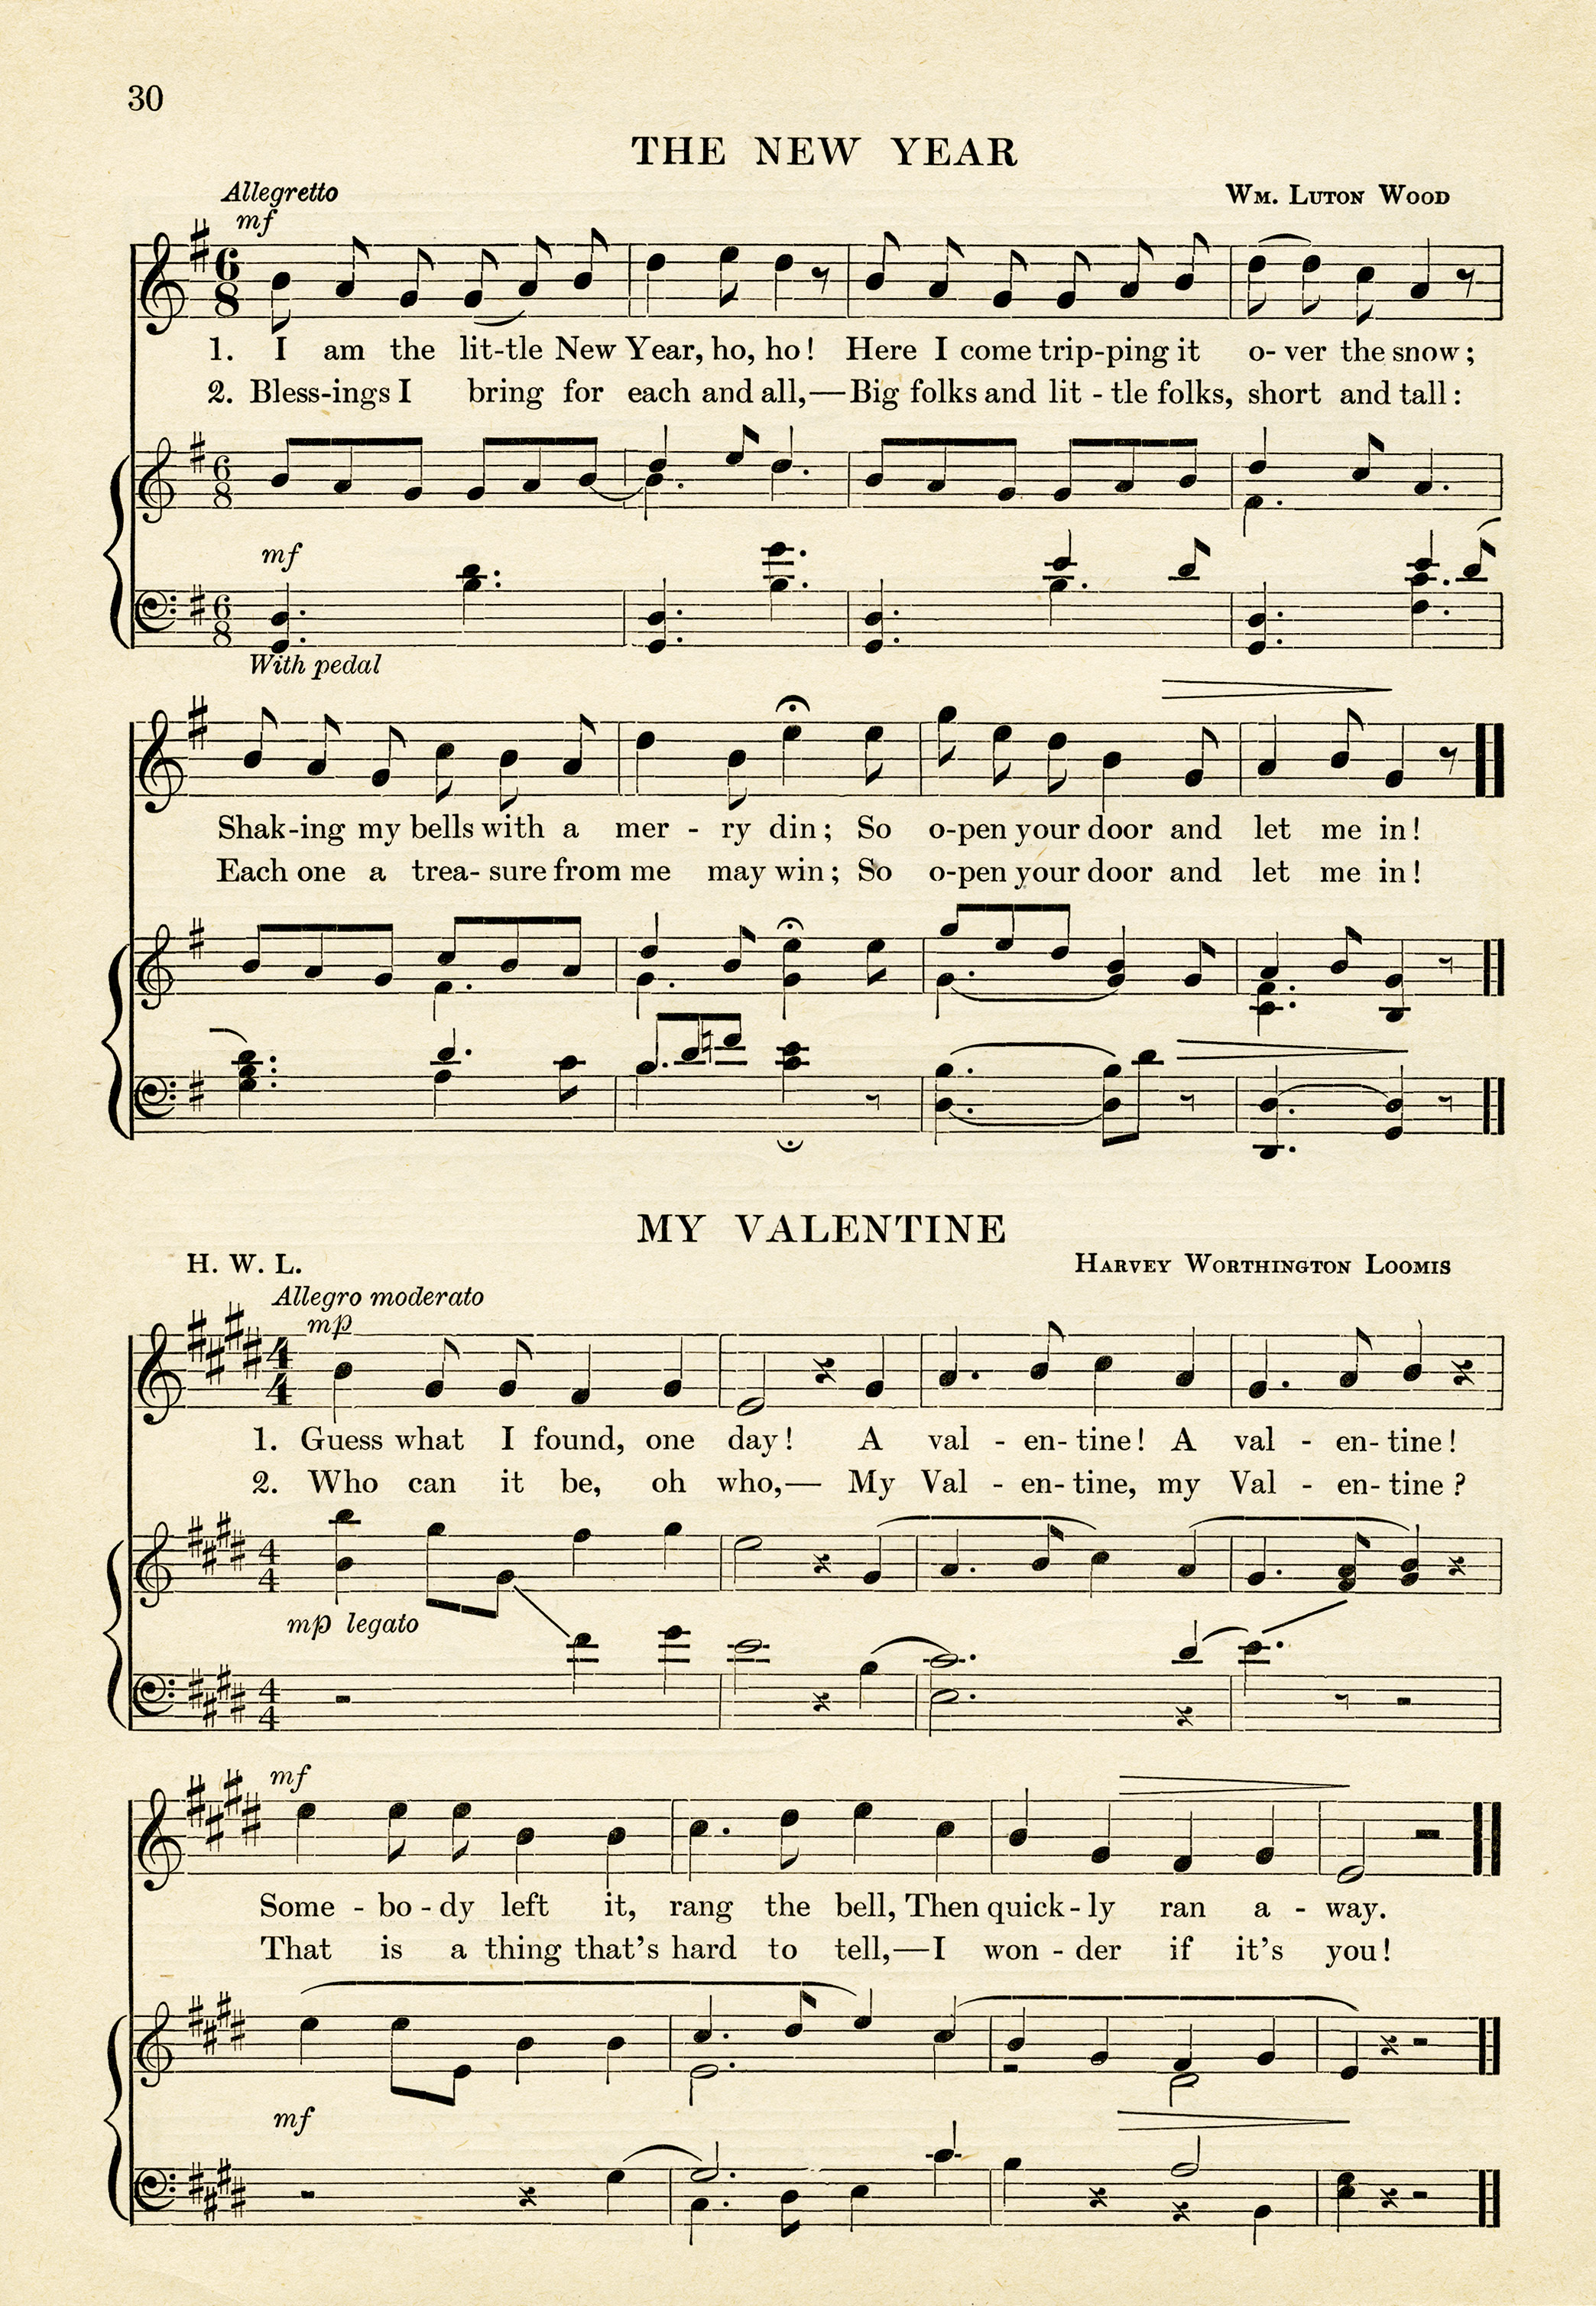 vintage sheet music, valentine song, printable music page, free vintage graphics, new year song